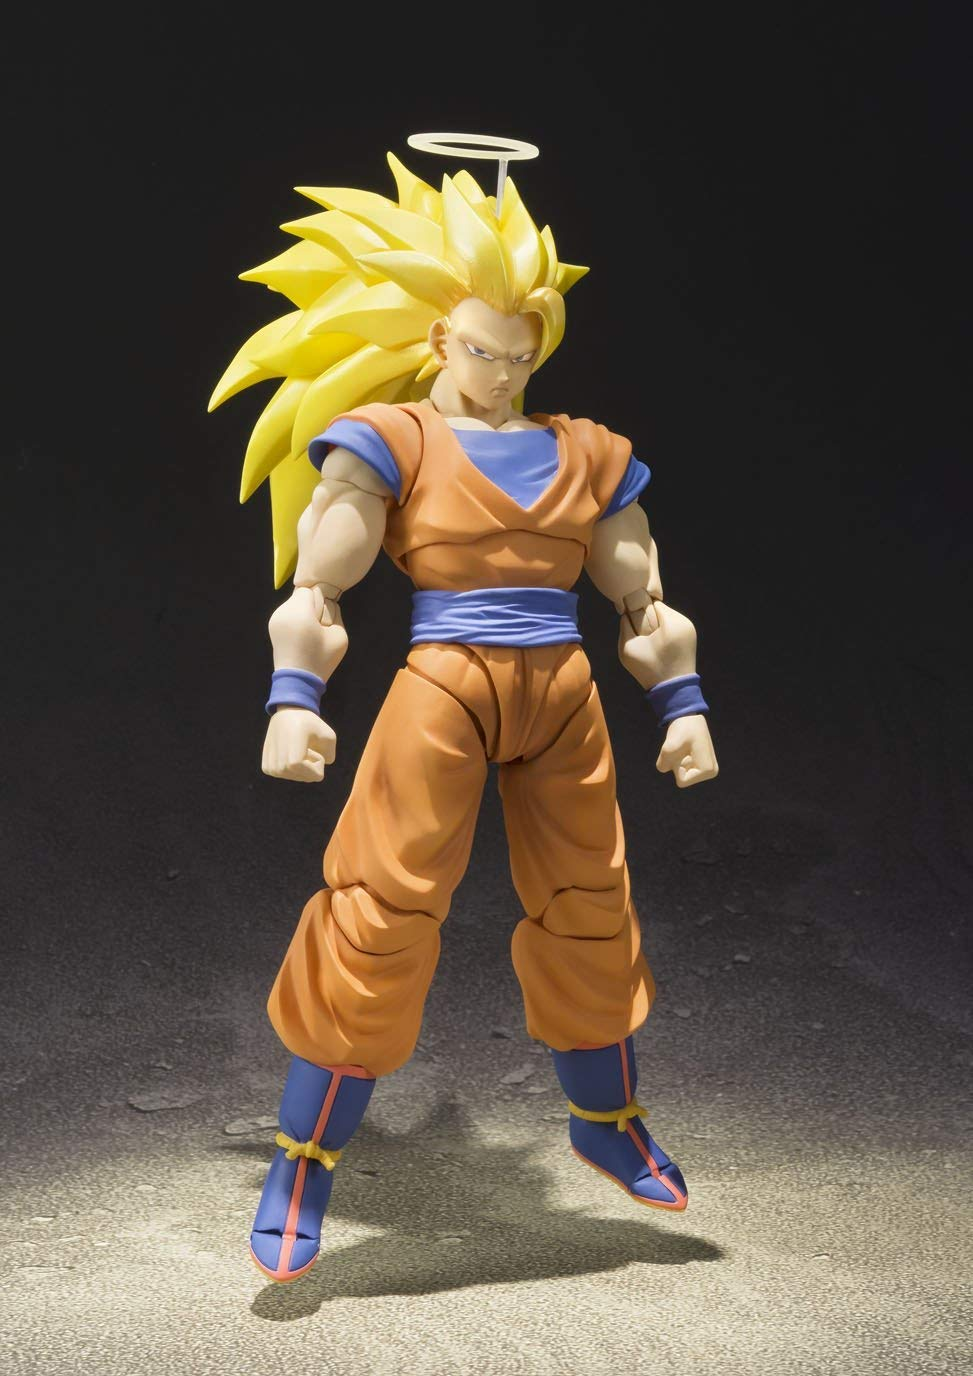 S.H. Figuarts Super Saiyan 3 Son Goku Dragon Ball Z Action Figure